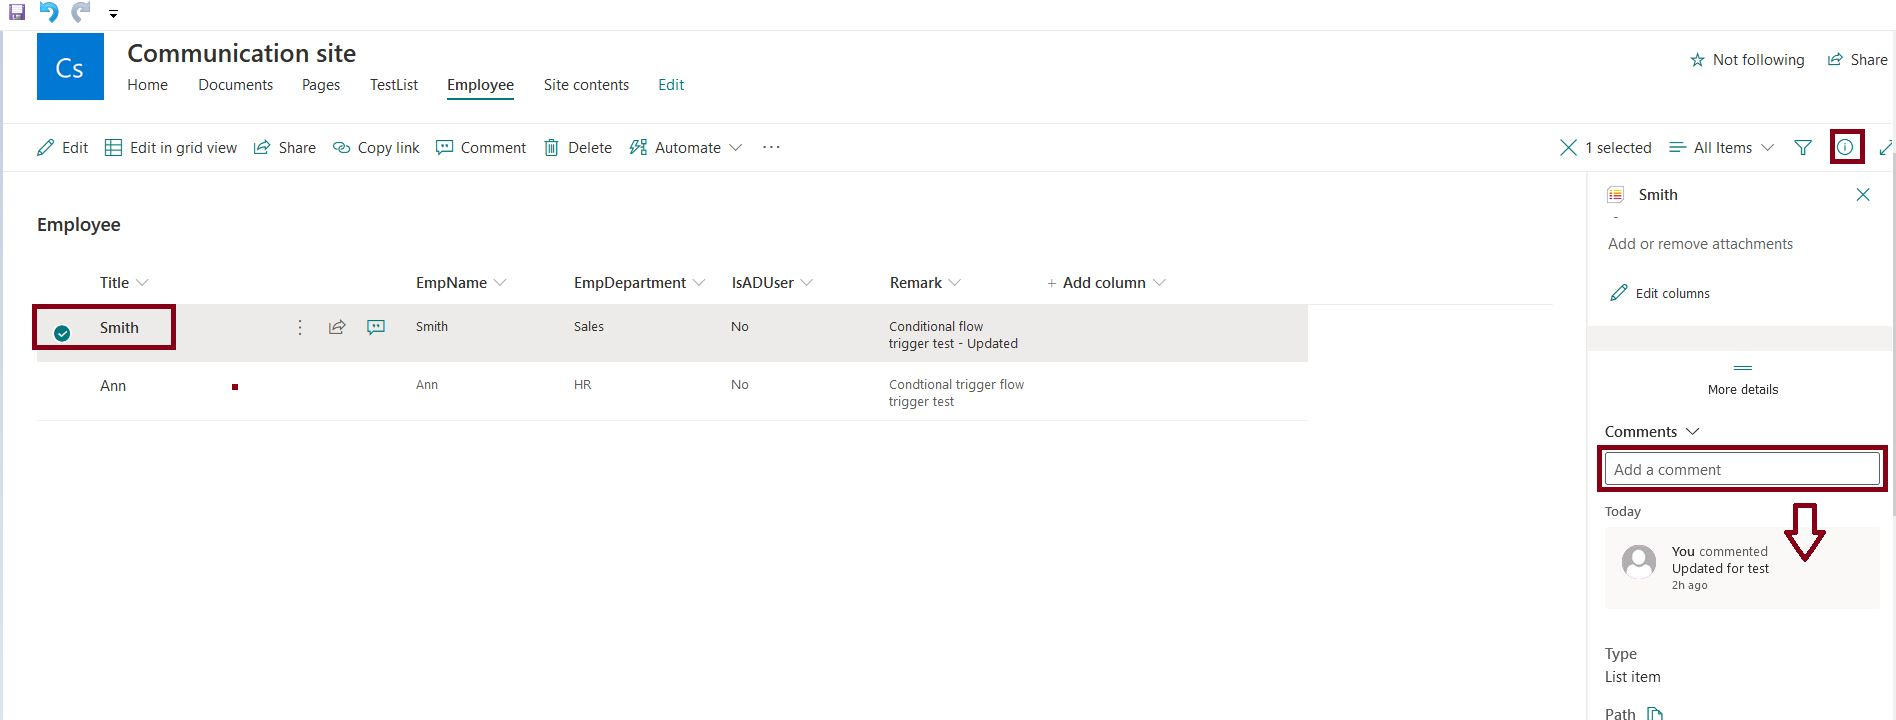 Add a comment for SharePoint Online list item modification from the details pane